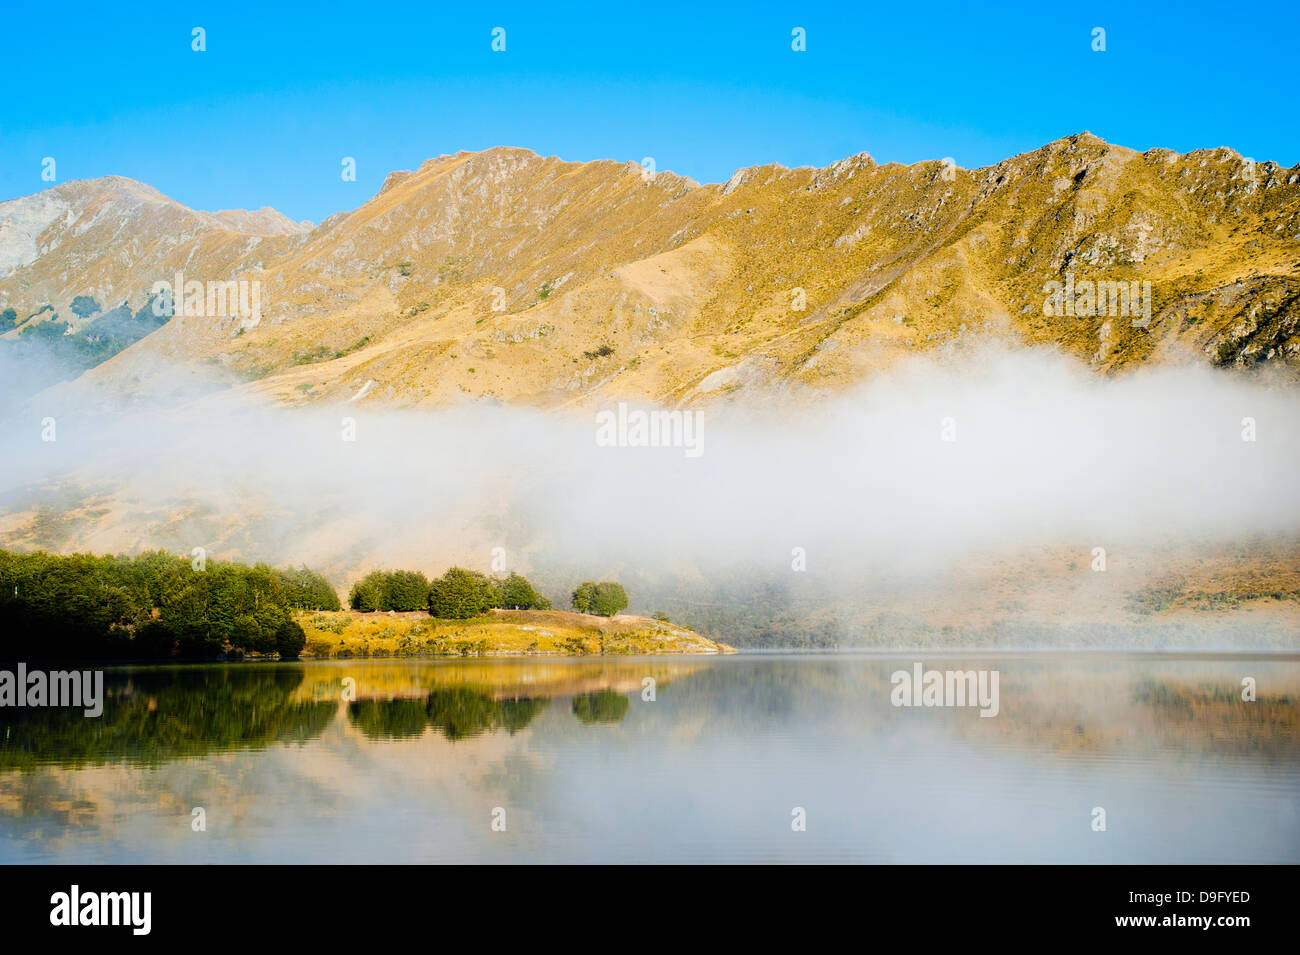 Misty dawn reflections at Lake Moke, Queenstown, Otago, South Island, New Zealand - Stock Image